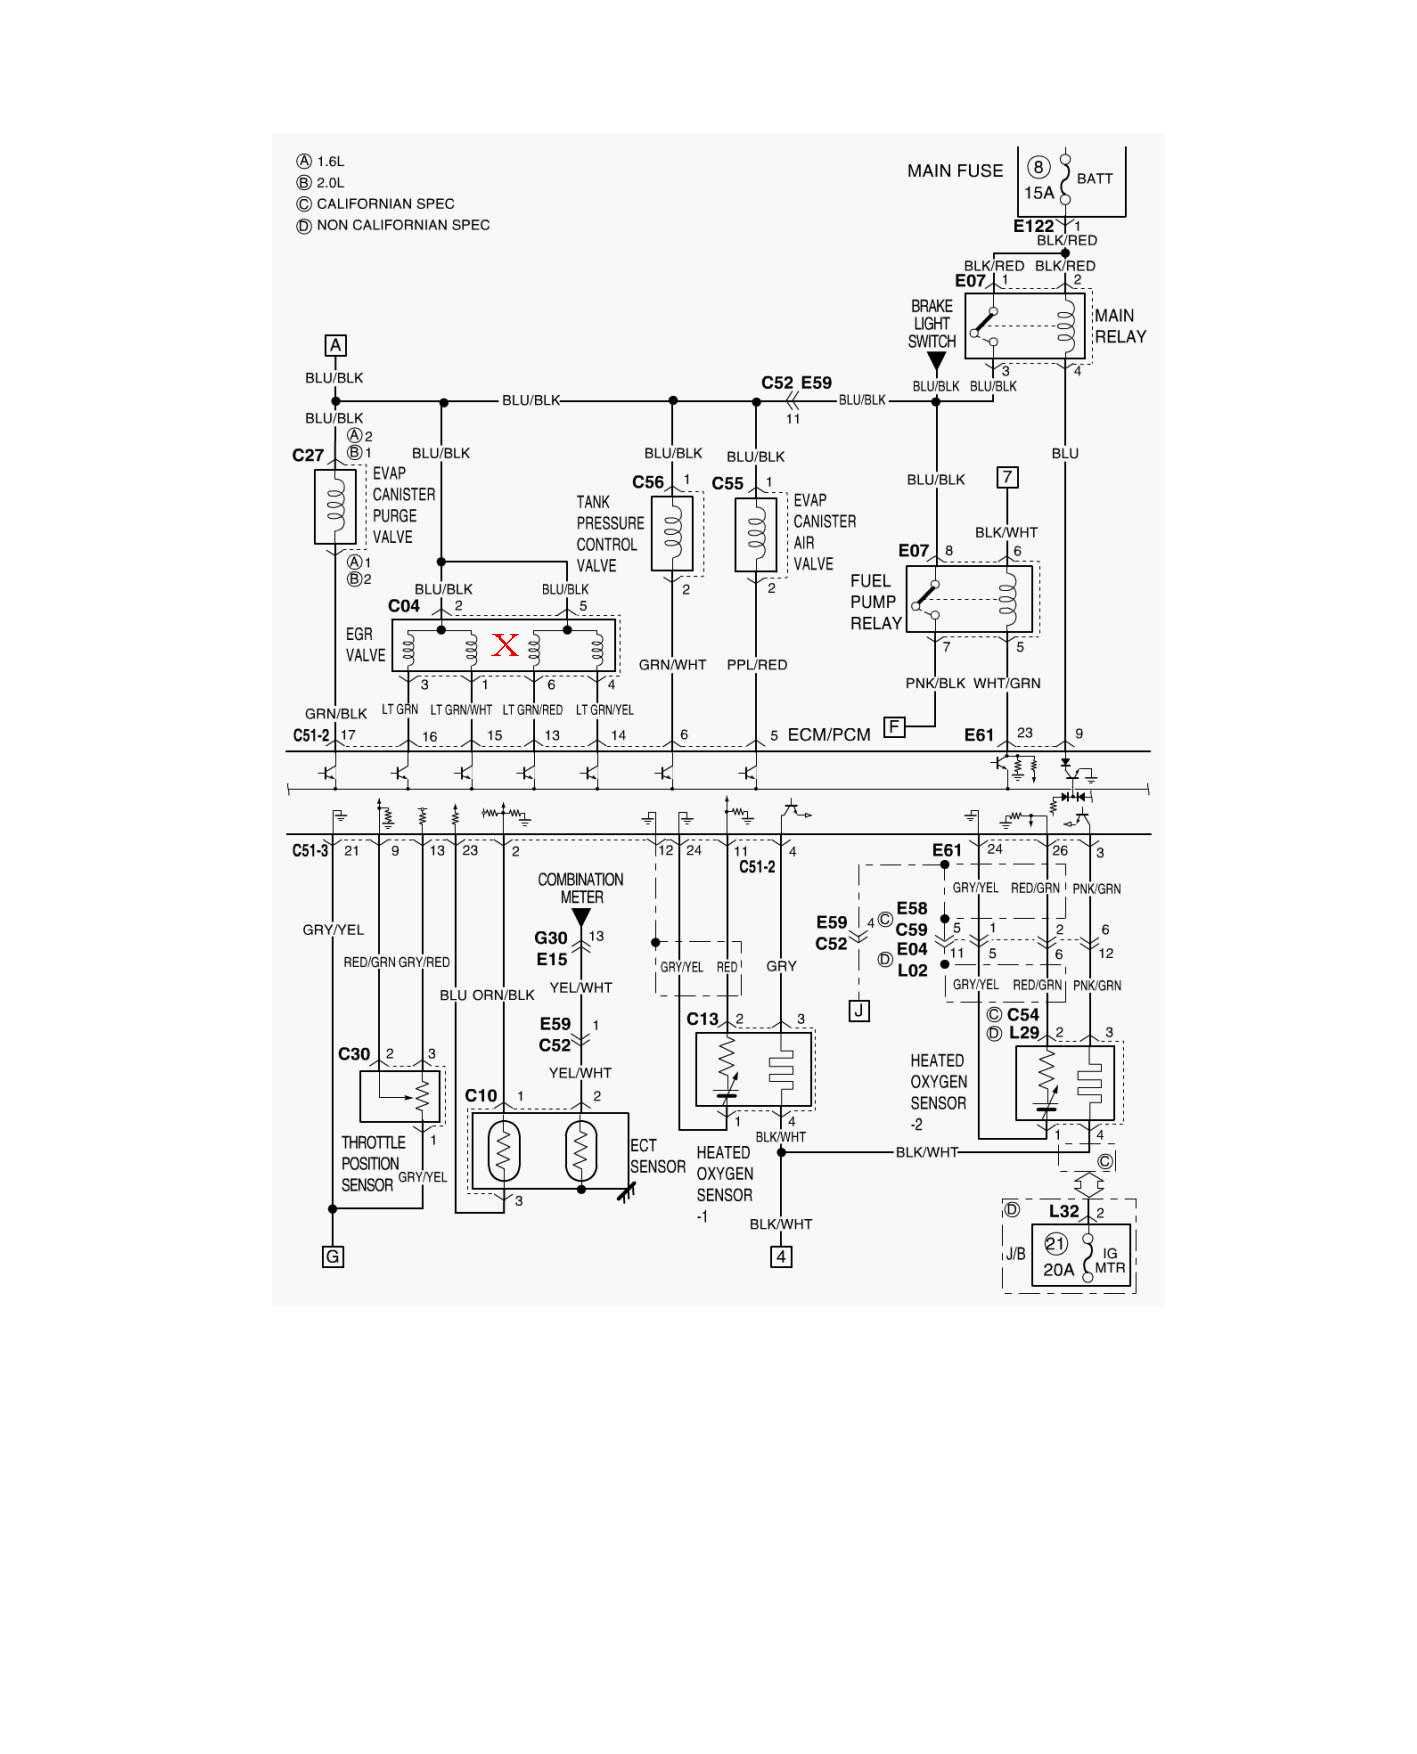 Wondrous Wiring Diagram Mazda 2 Auto Electrical Wiring Diagram Wiring Cloud Hemtshollocom